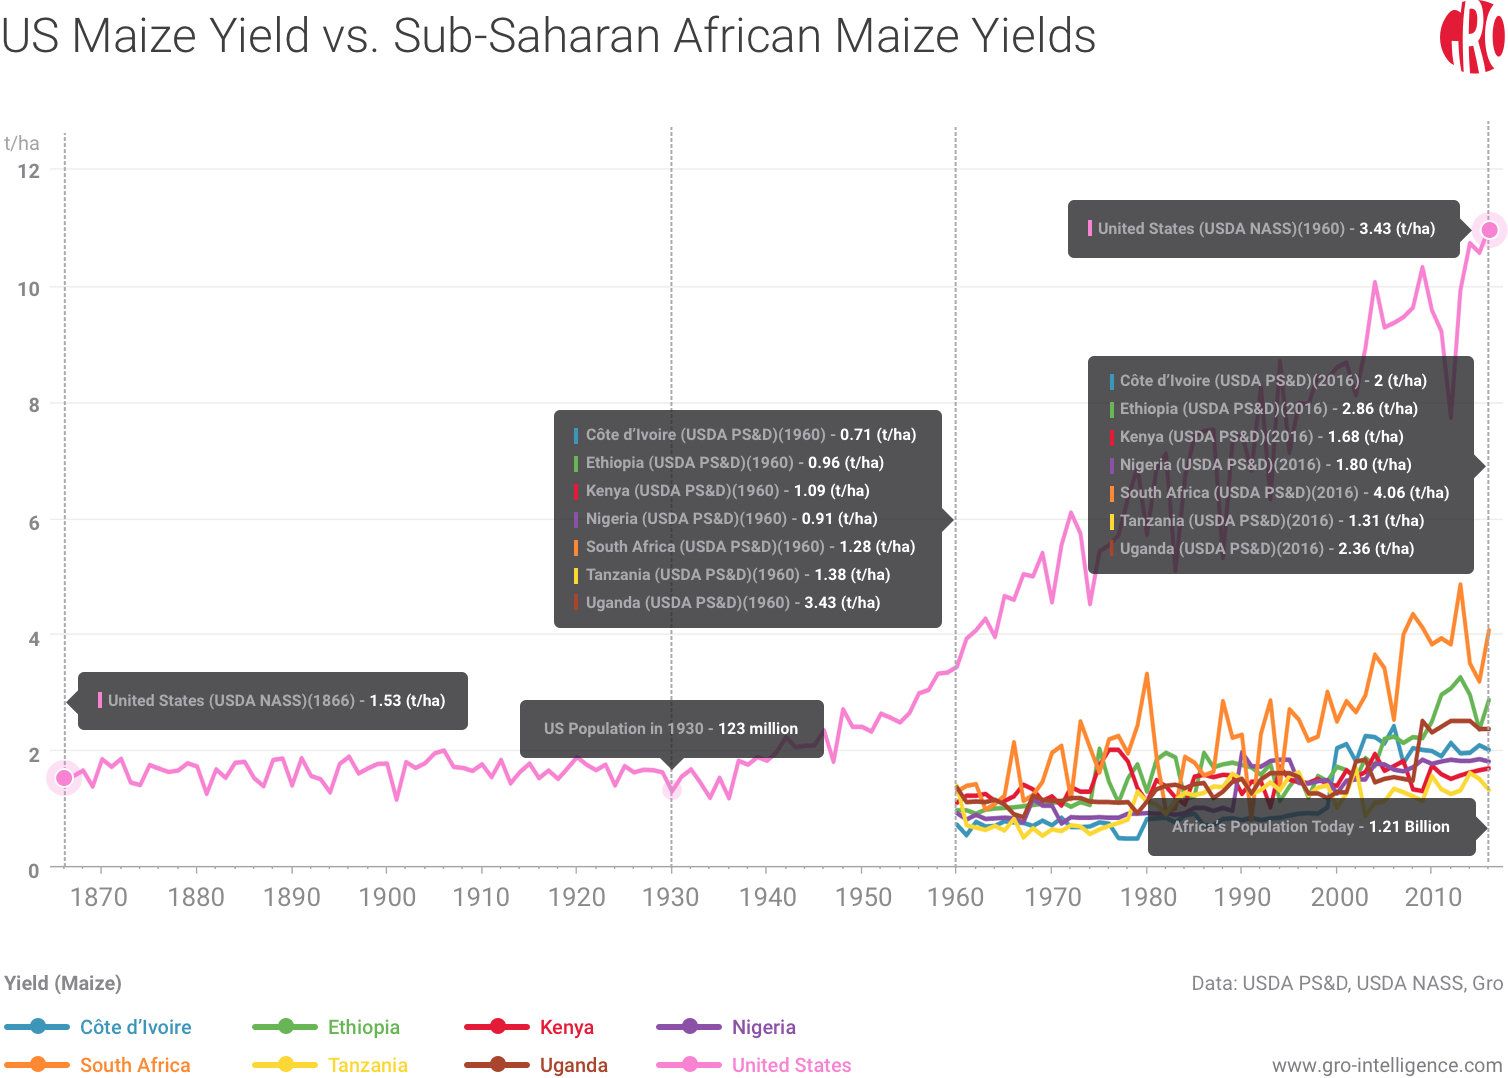 US and African Maize Yields